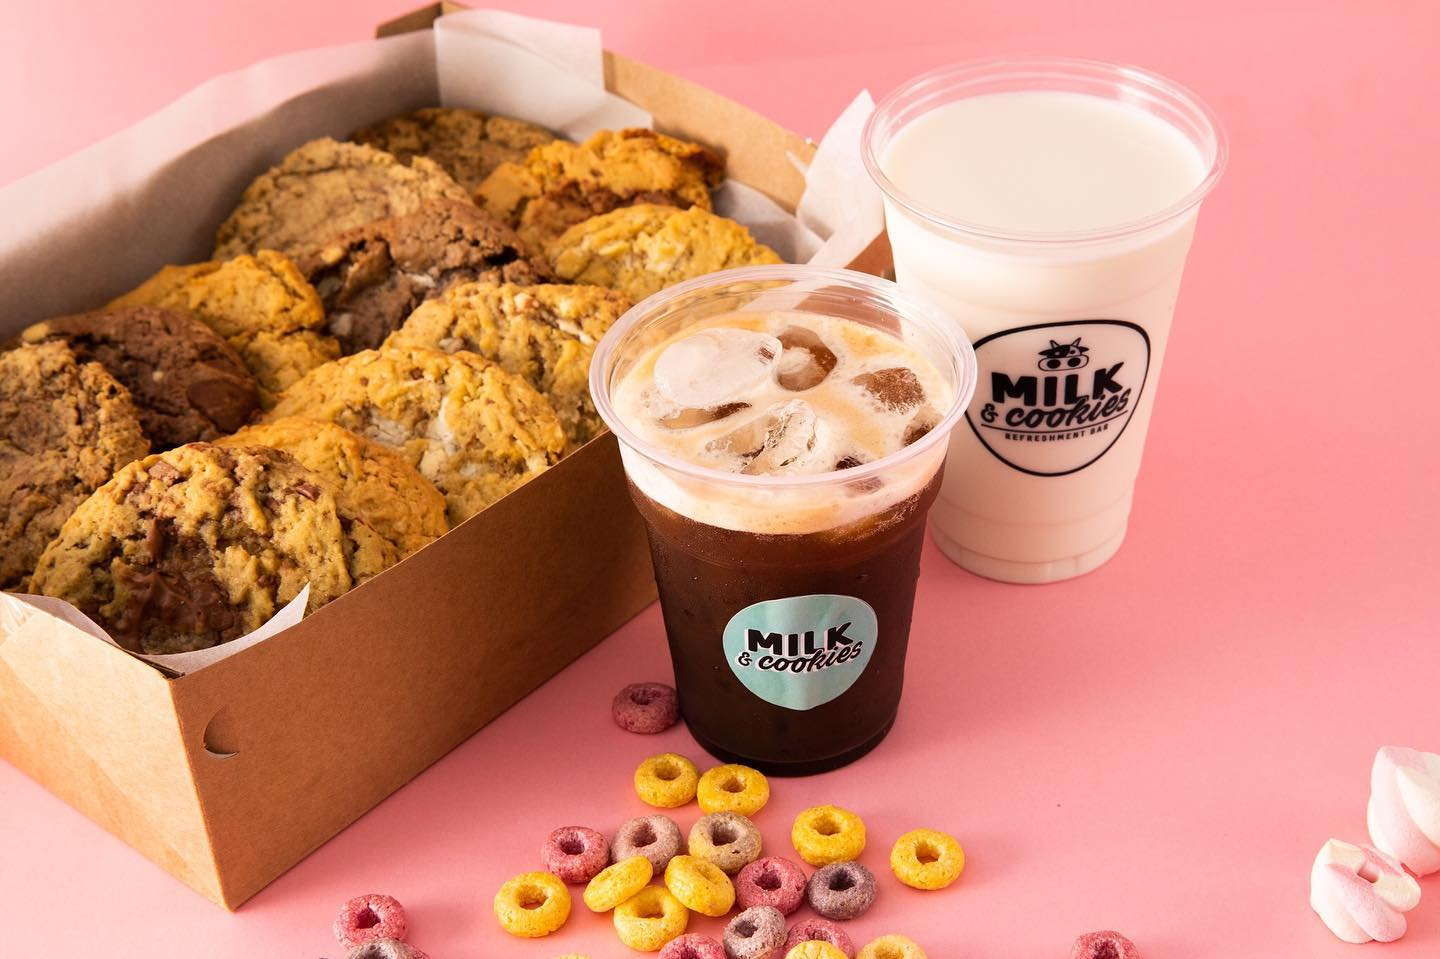 milk-and-cookies-franchise-coffee-milk